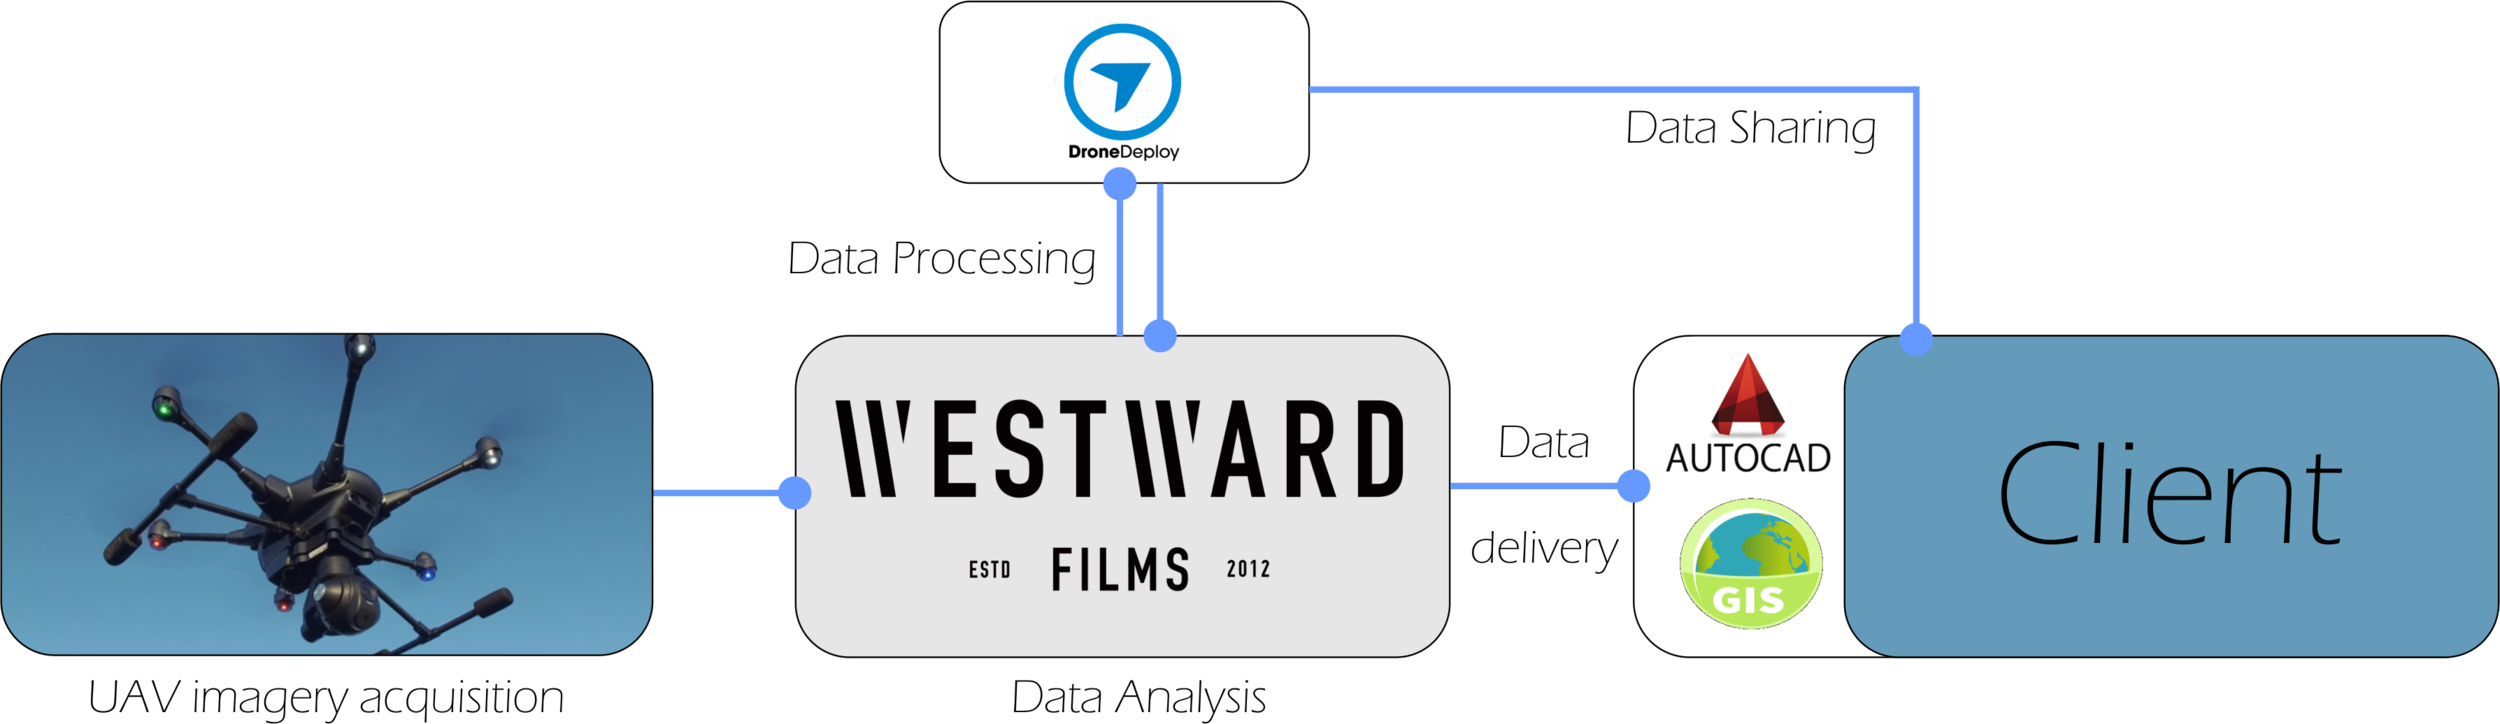 Westward Films Aerial - Data work flow